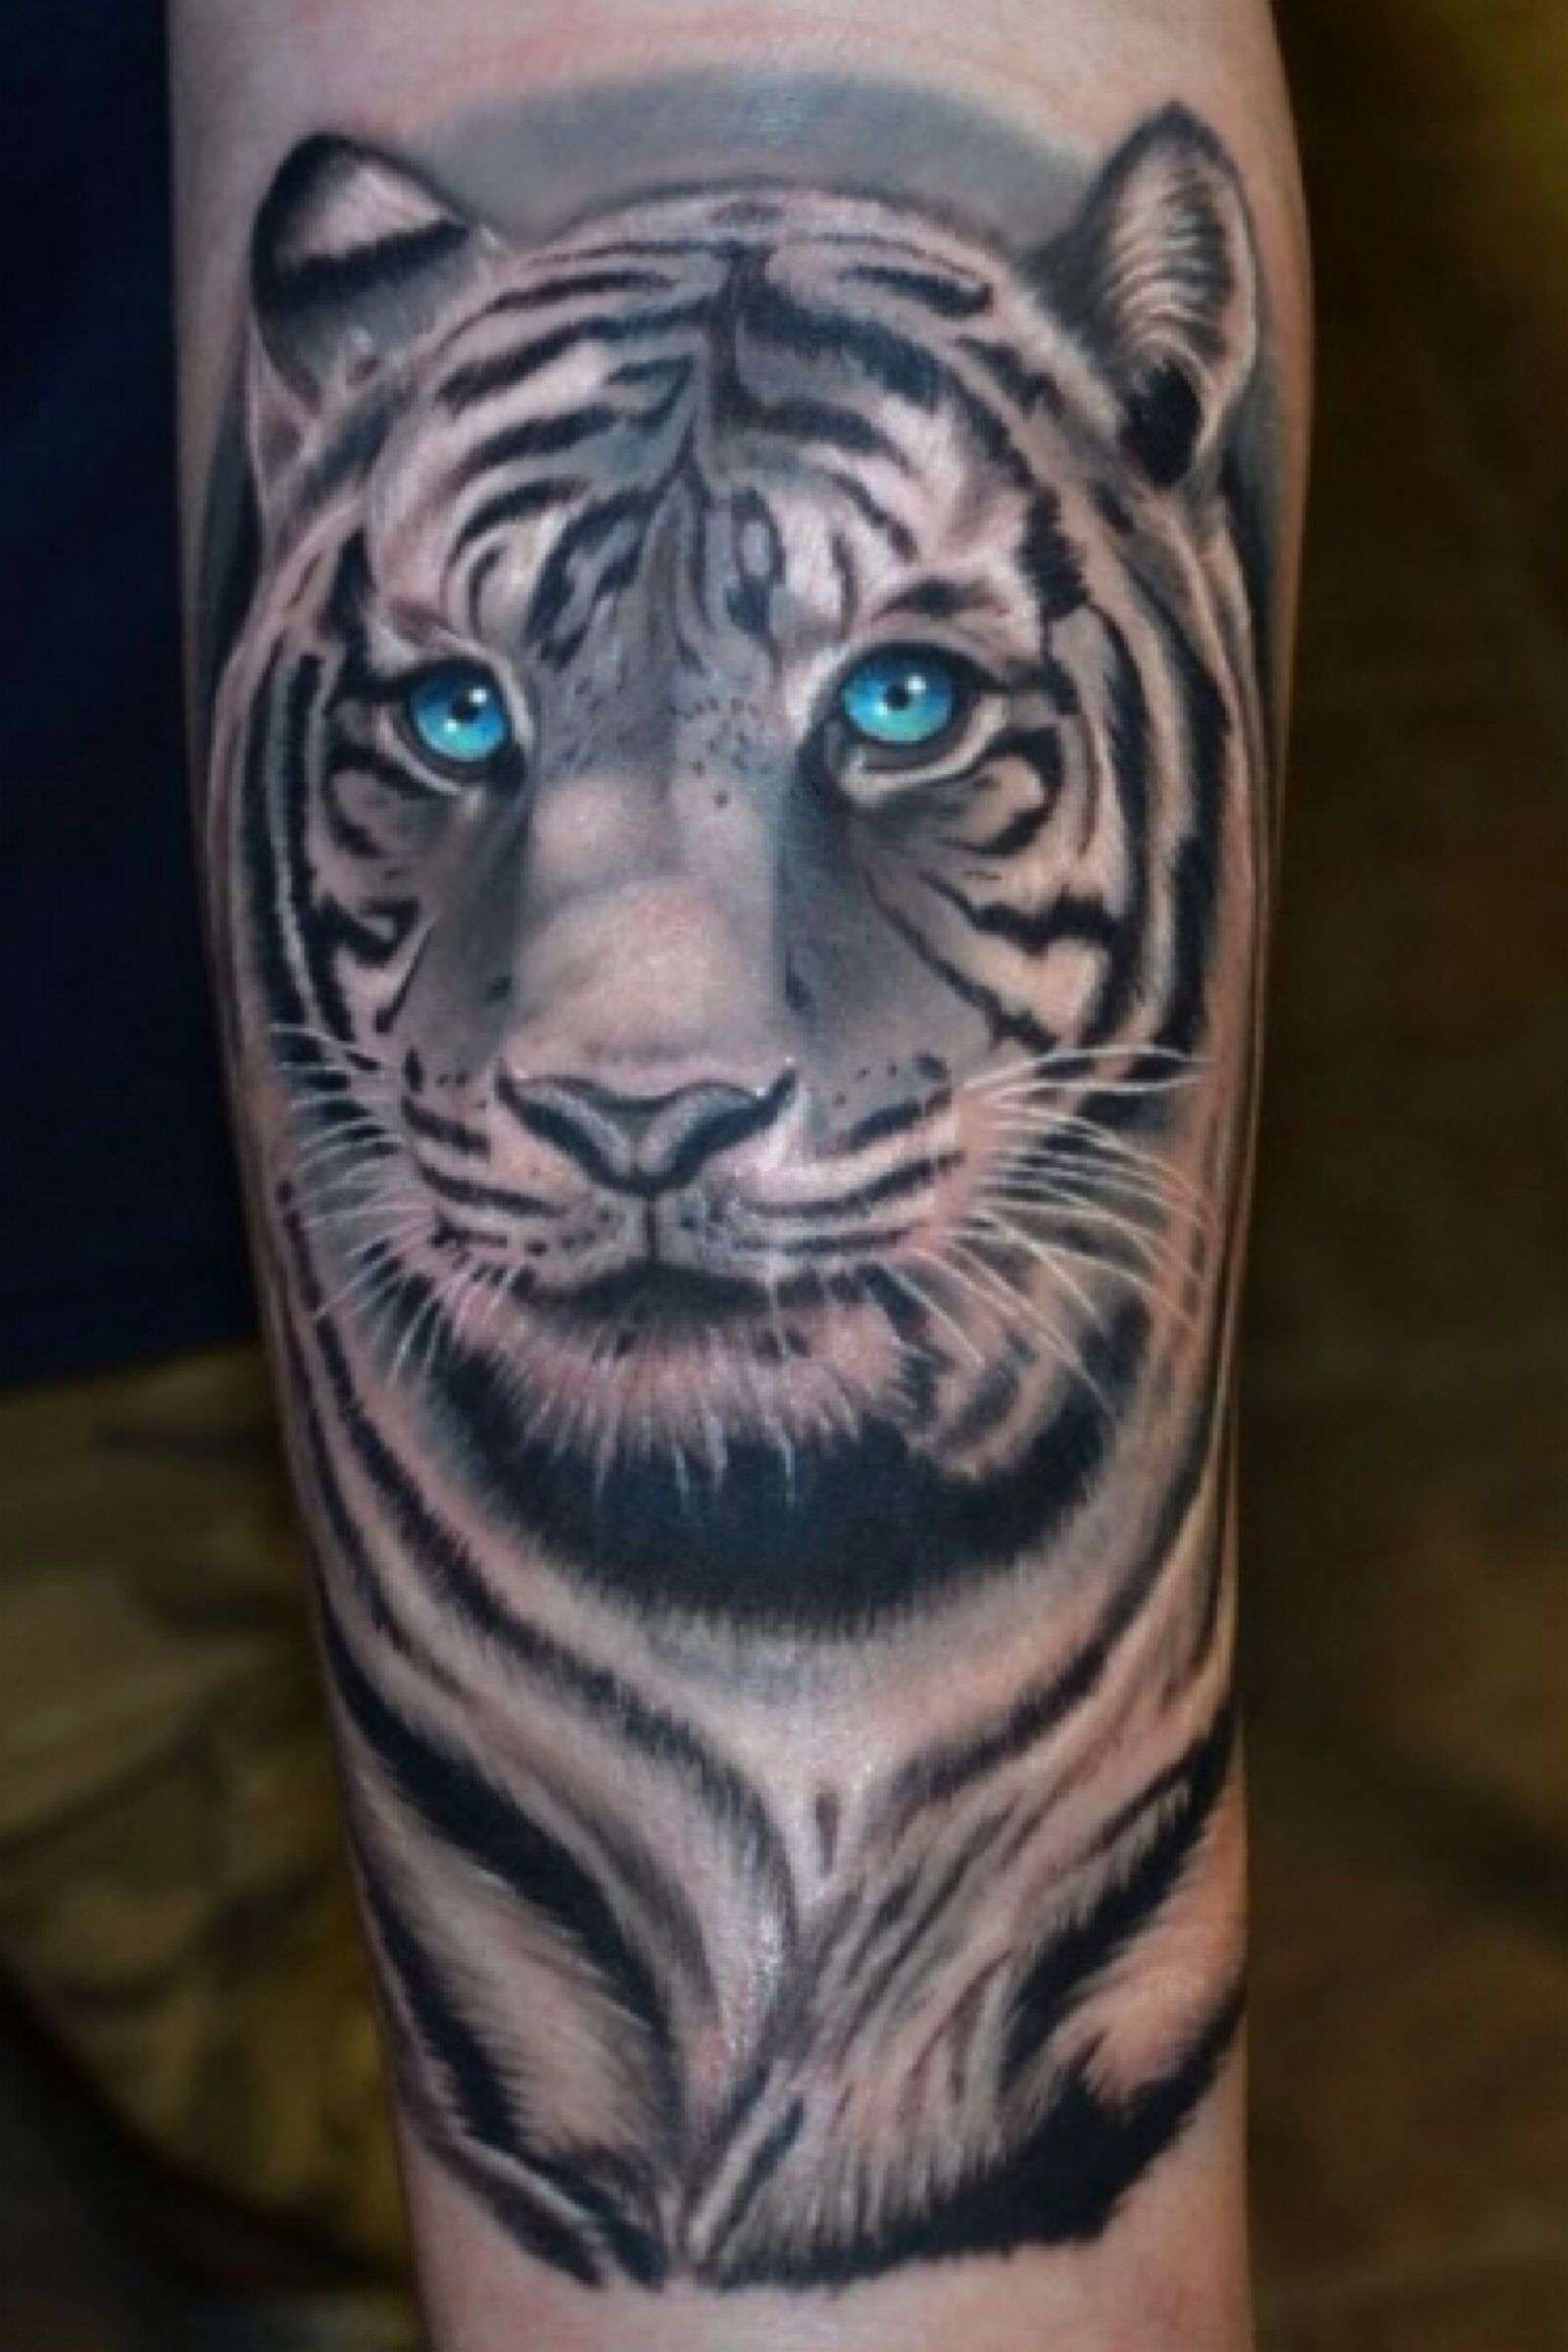 Beautiful Tattoos Ideas On Black Skin That You Must See New Black And White Tattoo With A Splash Of Co White Tiger Tattoo Tiger Tattoo Design Mens Tiger Tattoo